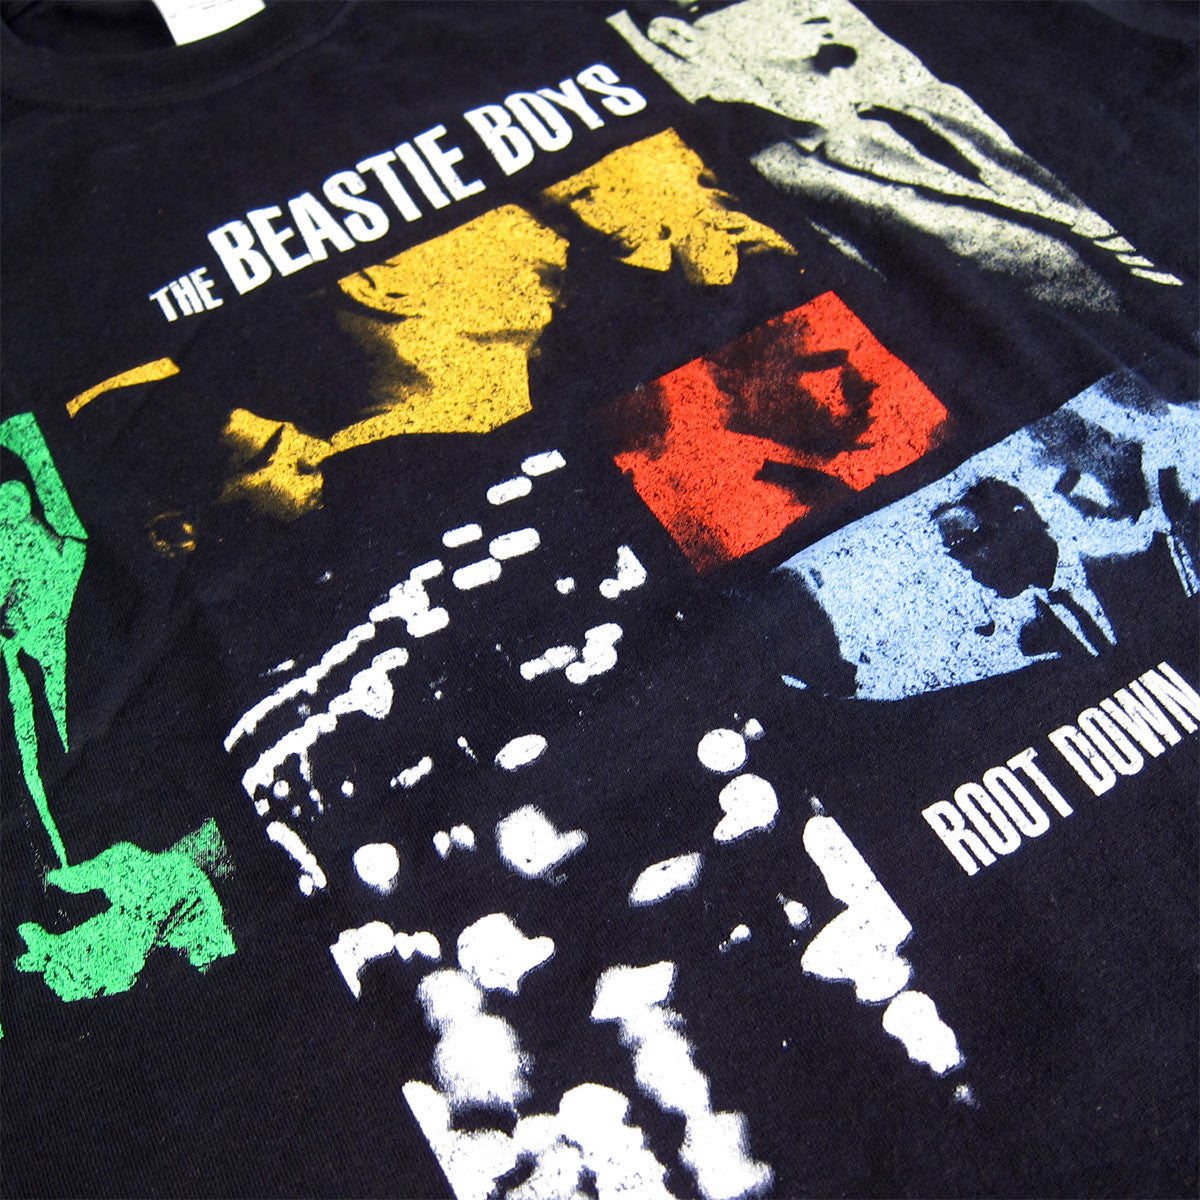 Beastie Boys: Root Down Shirt detail